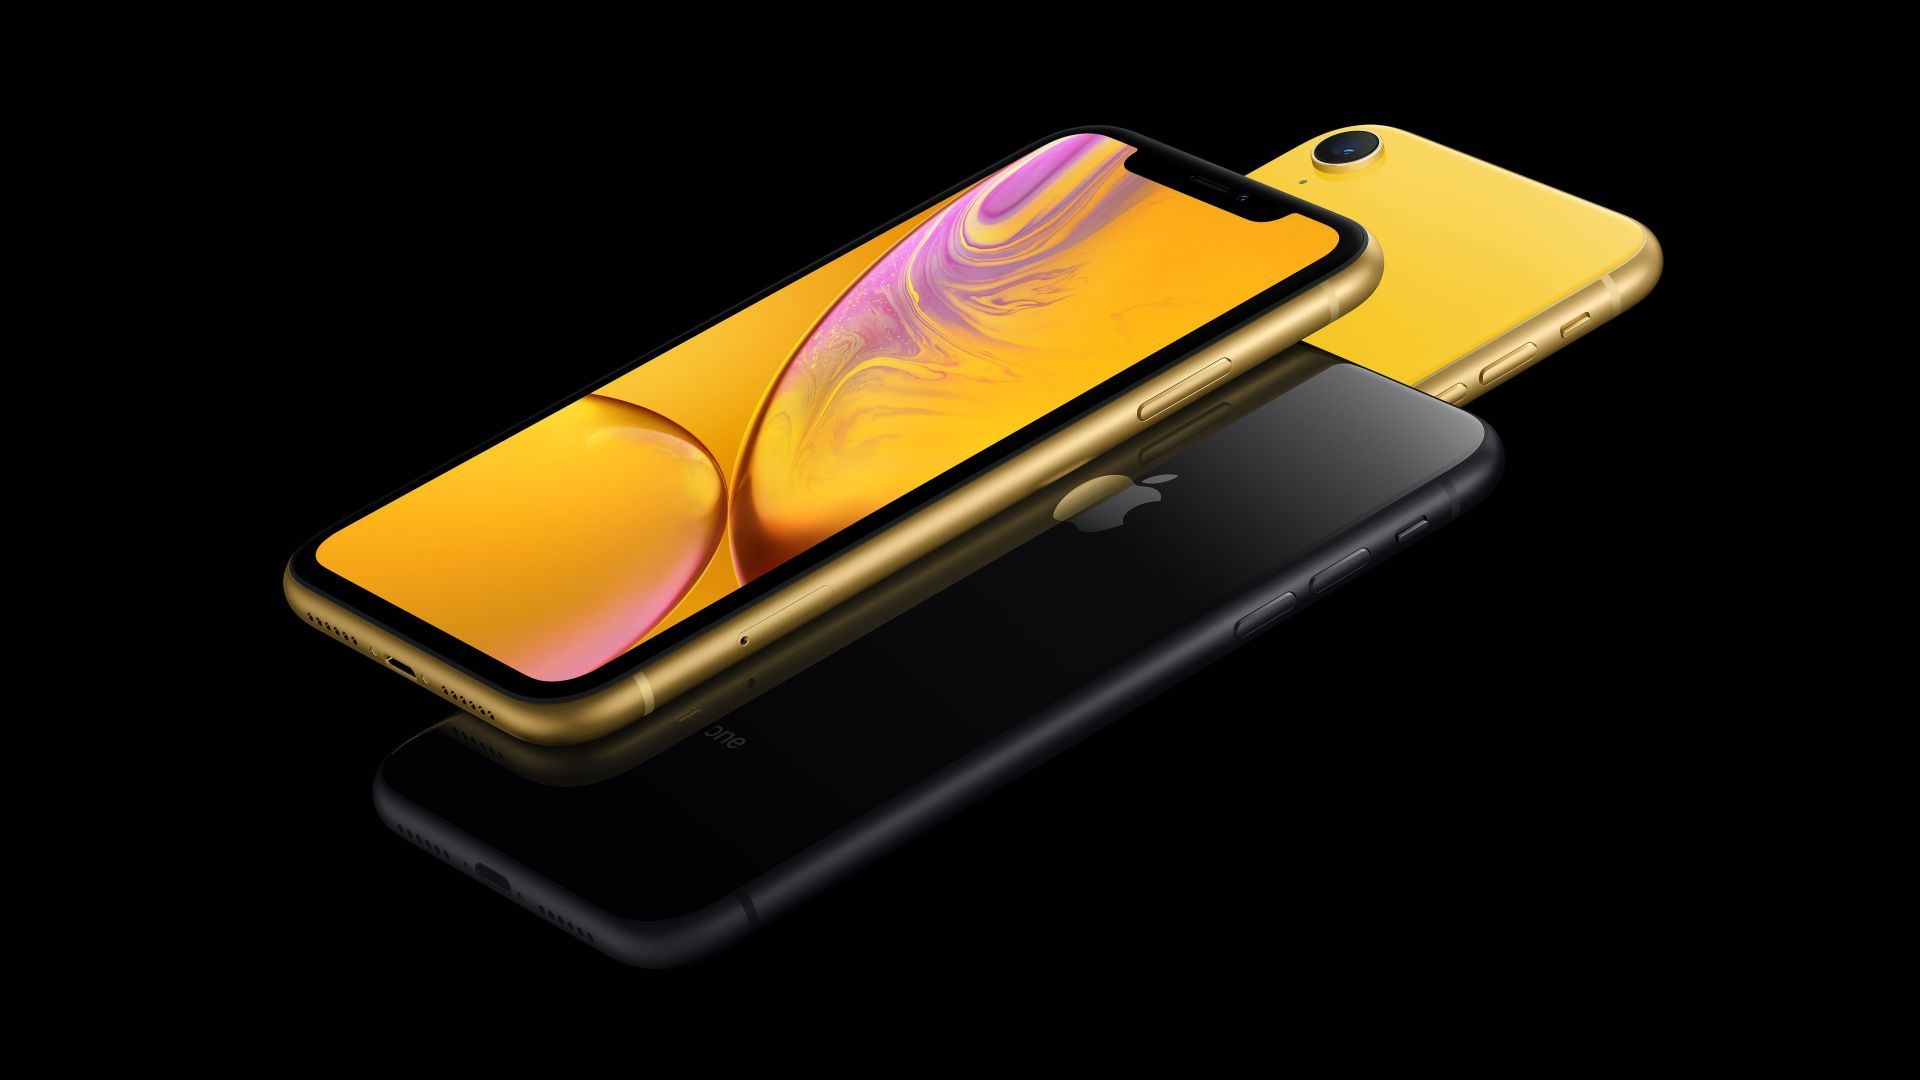 iPhone XR, gold, black, yellow, 5K, smartphone, Apple September 2018 Event (horizontal)